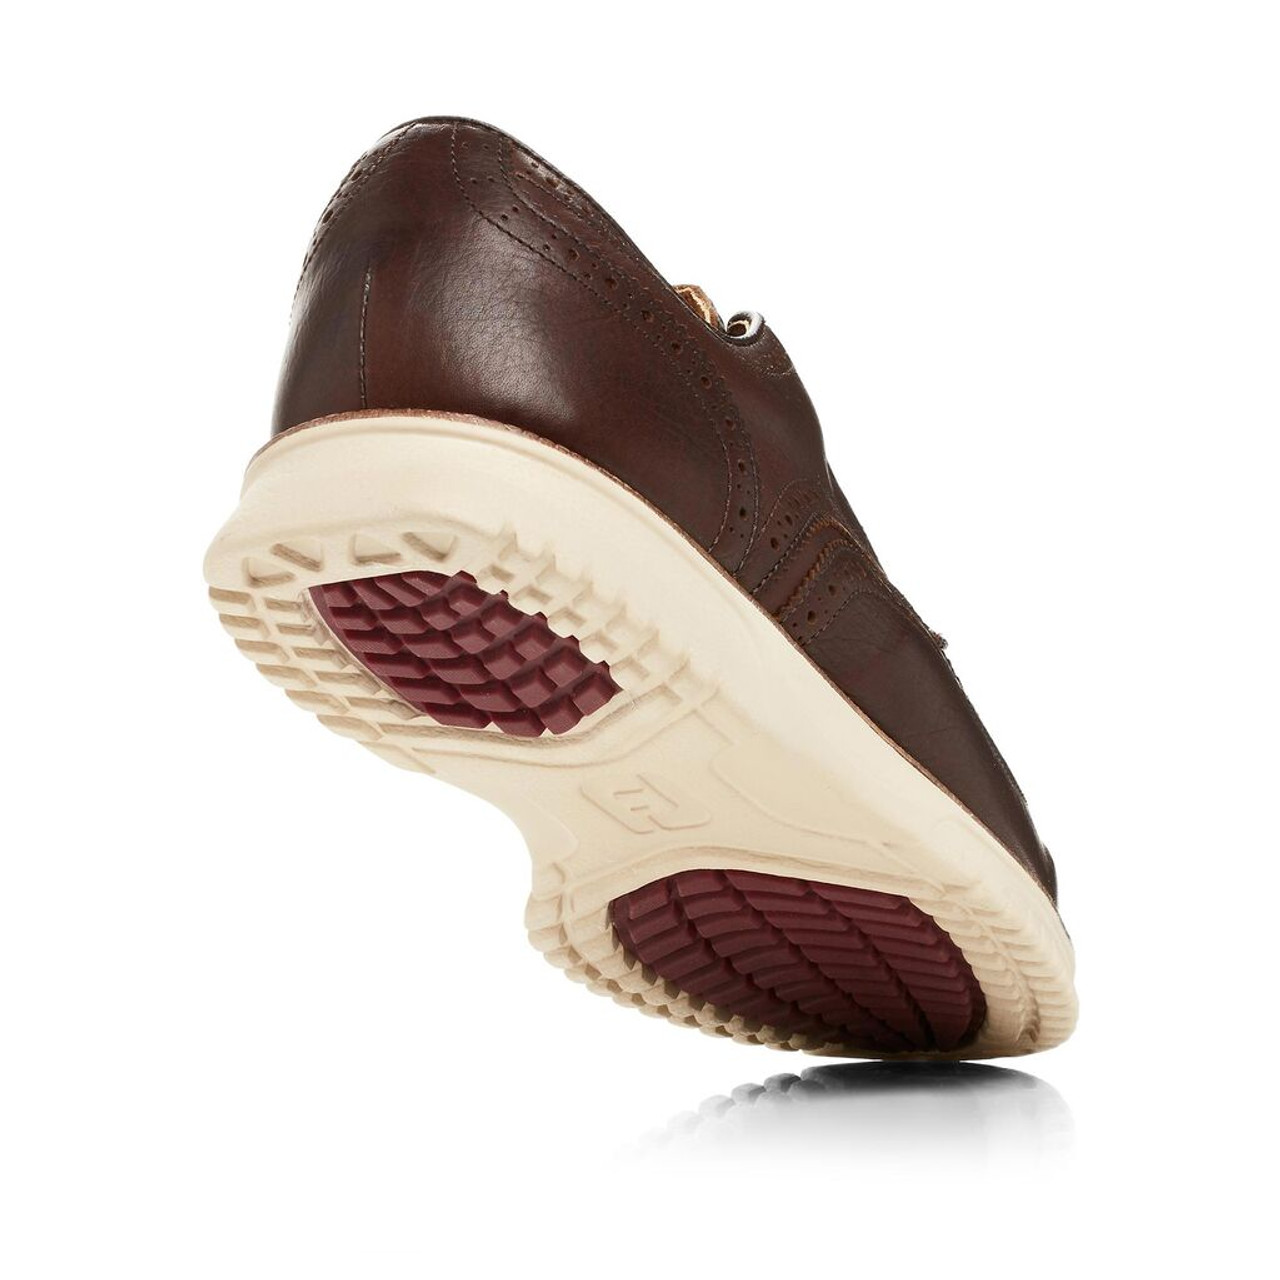 FootJoy Club Casuals Wing Tip Golf Shoes - Brown (79057)